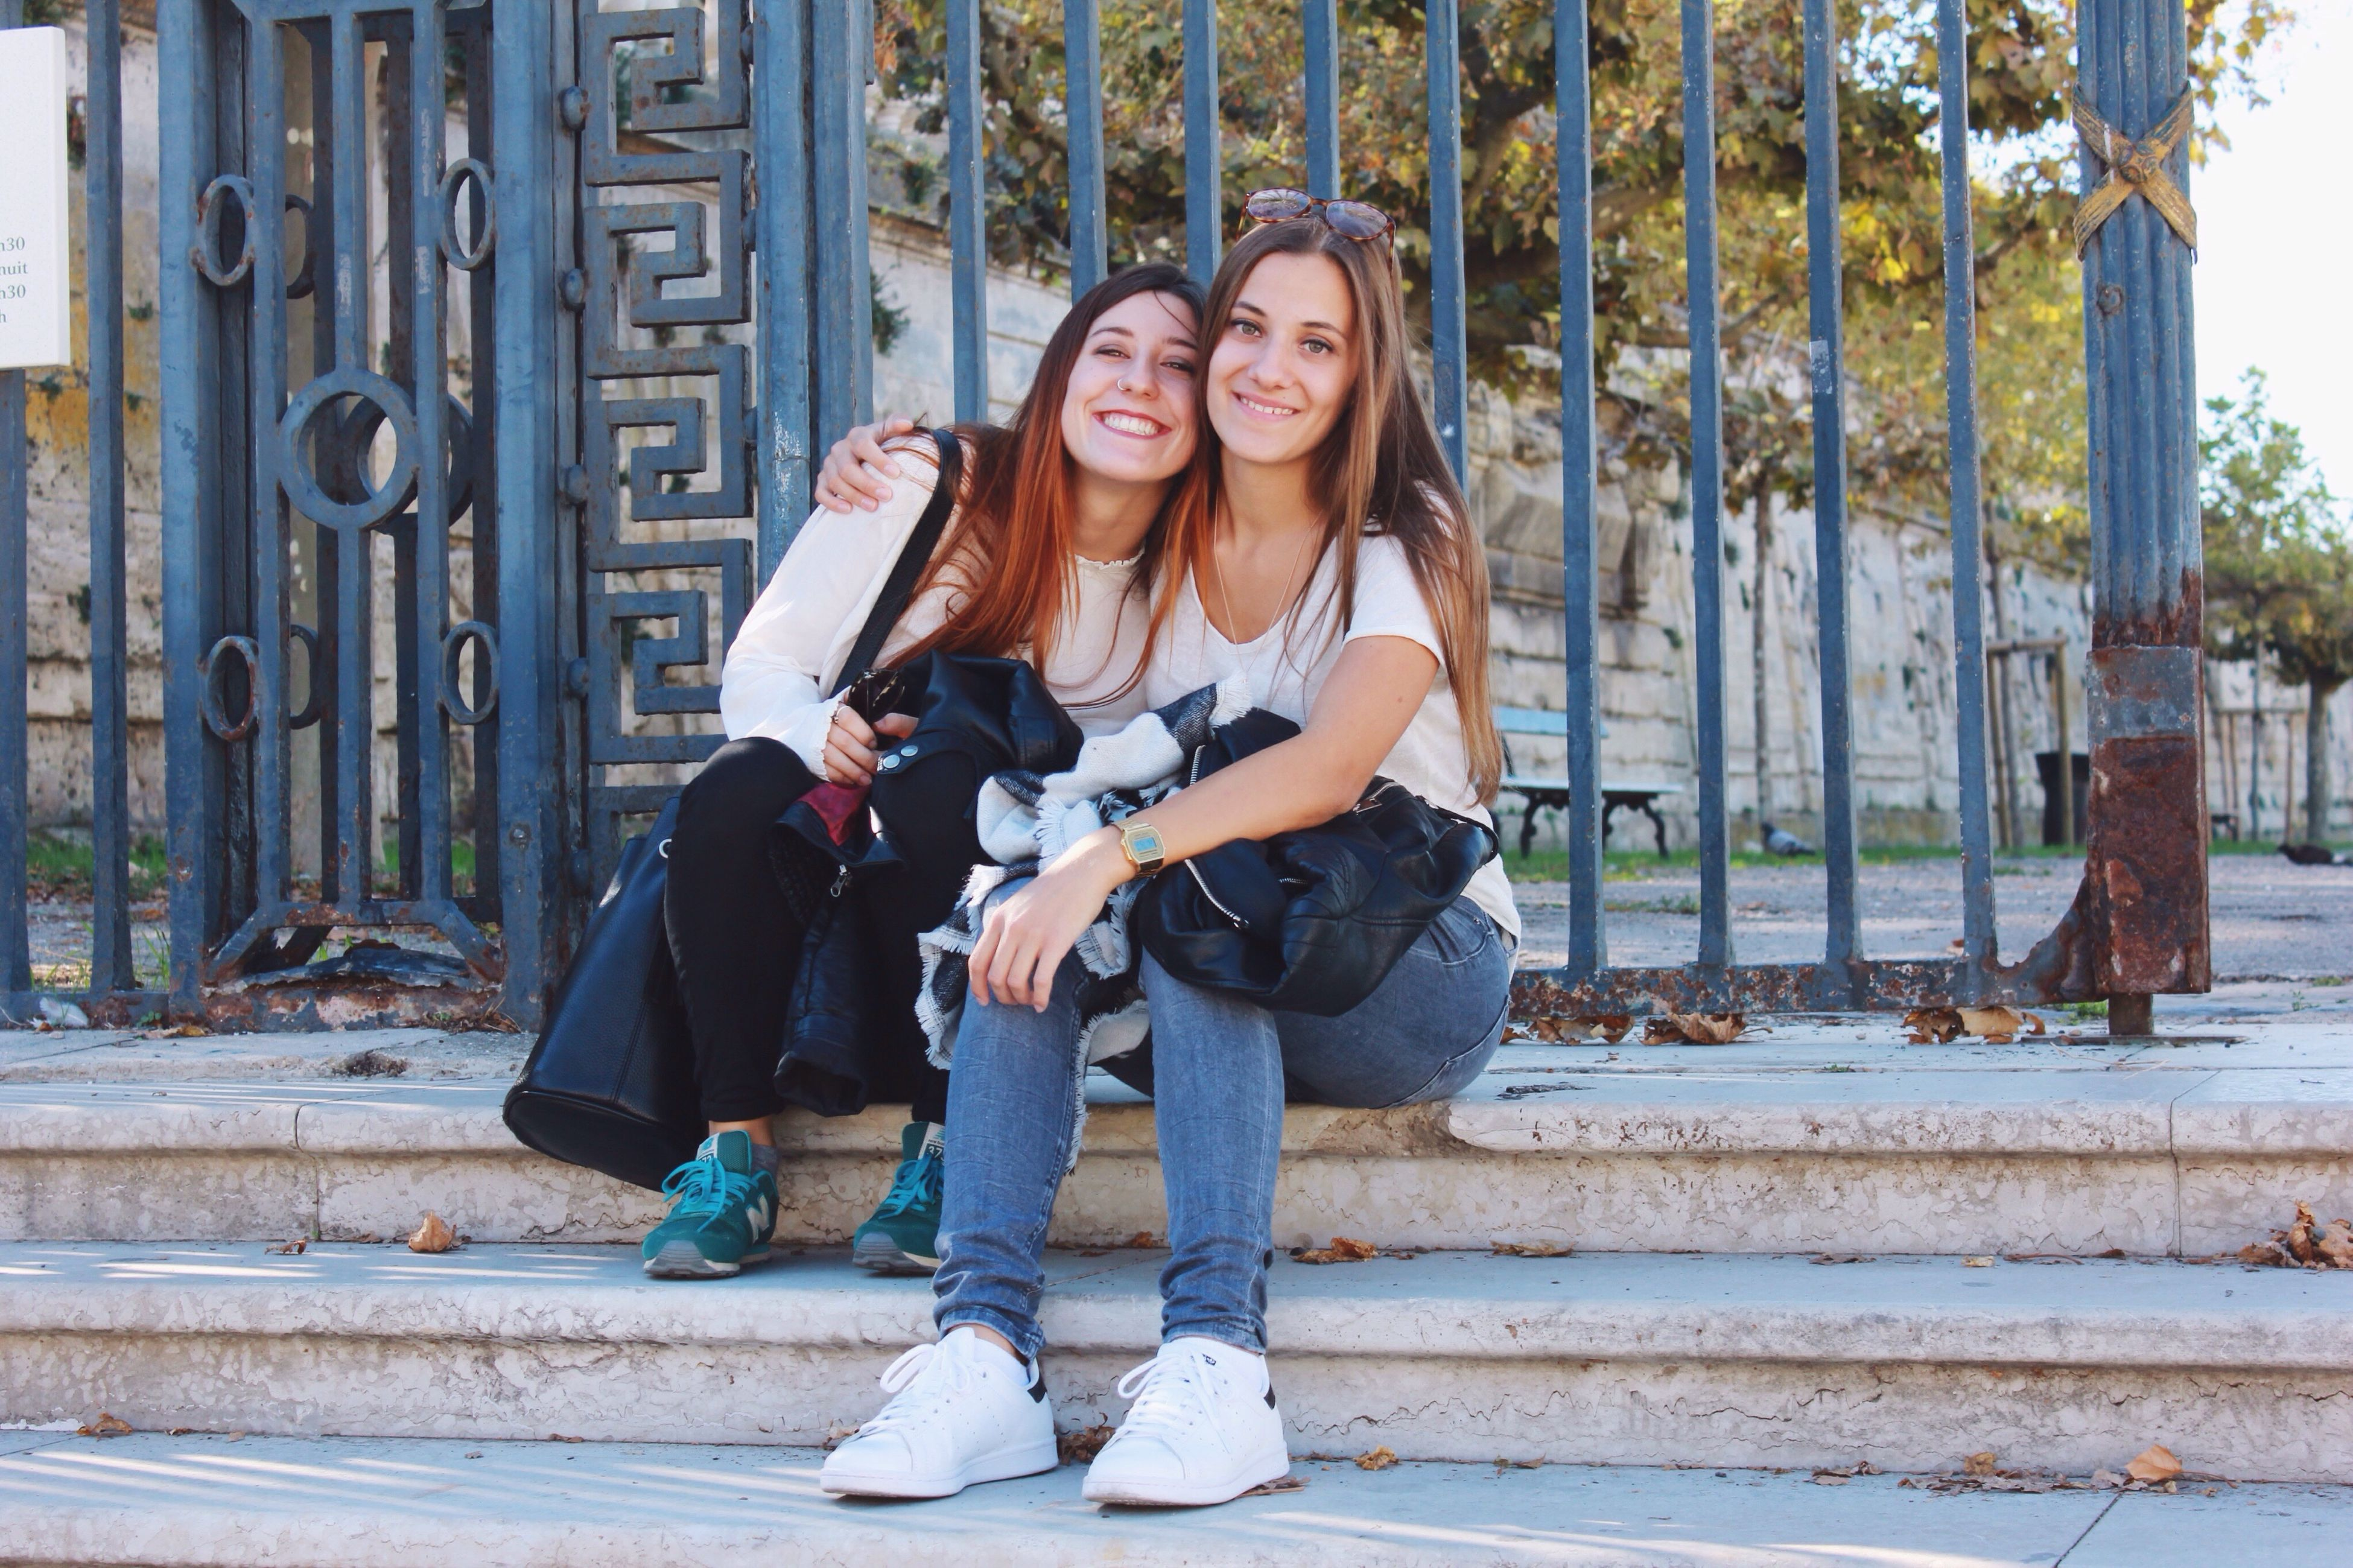 teenager, teenage girls, females, adolescence, friendship, sitting, full length, beautiful people, smiling, leisure activity, outdoors, longboard skating, people, togetherness, young adult, beauty, summer, lifestyles, happiness, women, cheerful, adult, beauty in nature, young women, beautiful woman, day, human body part